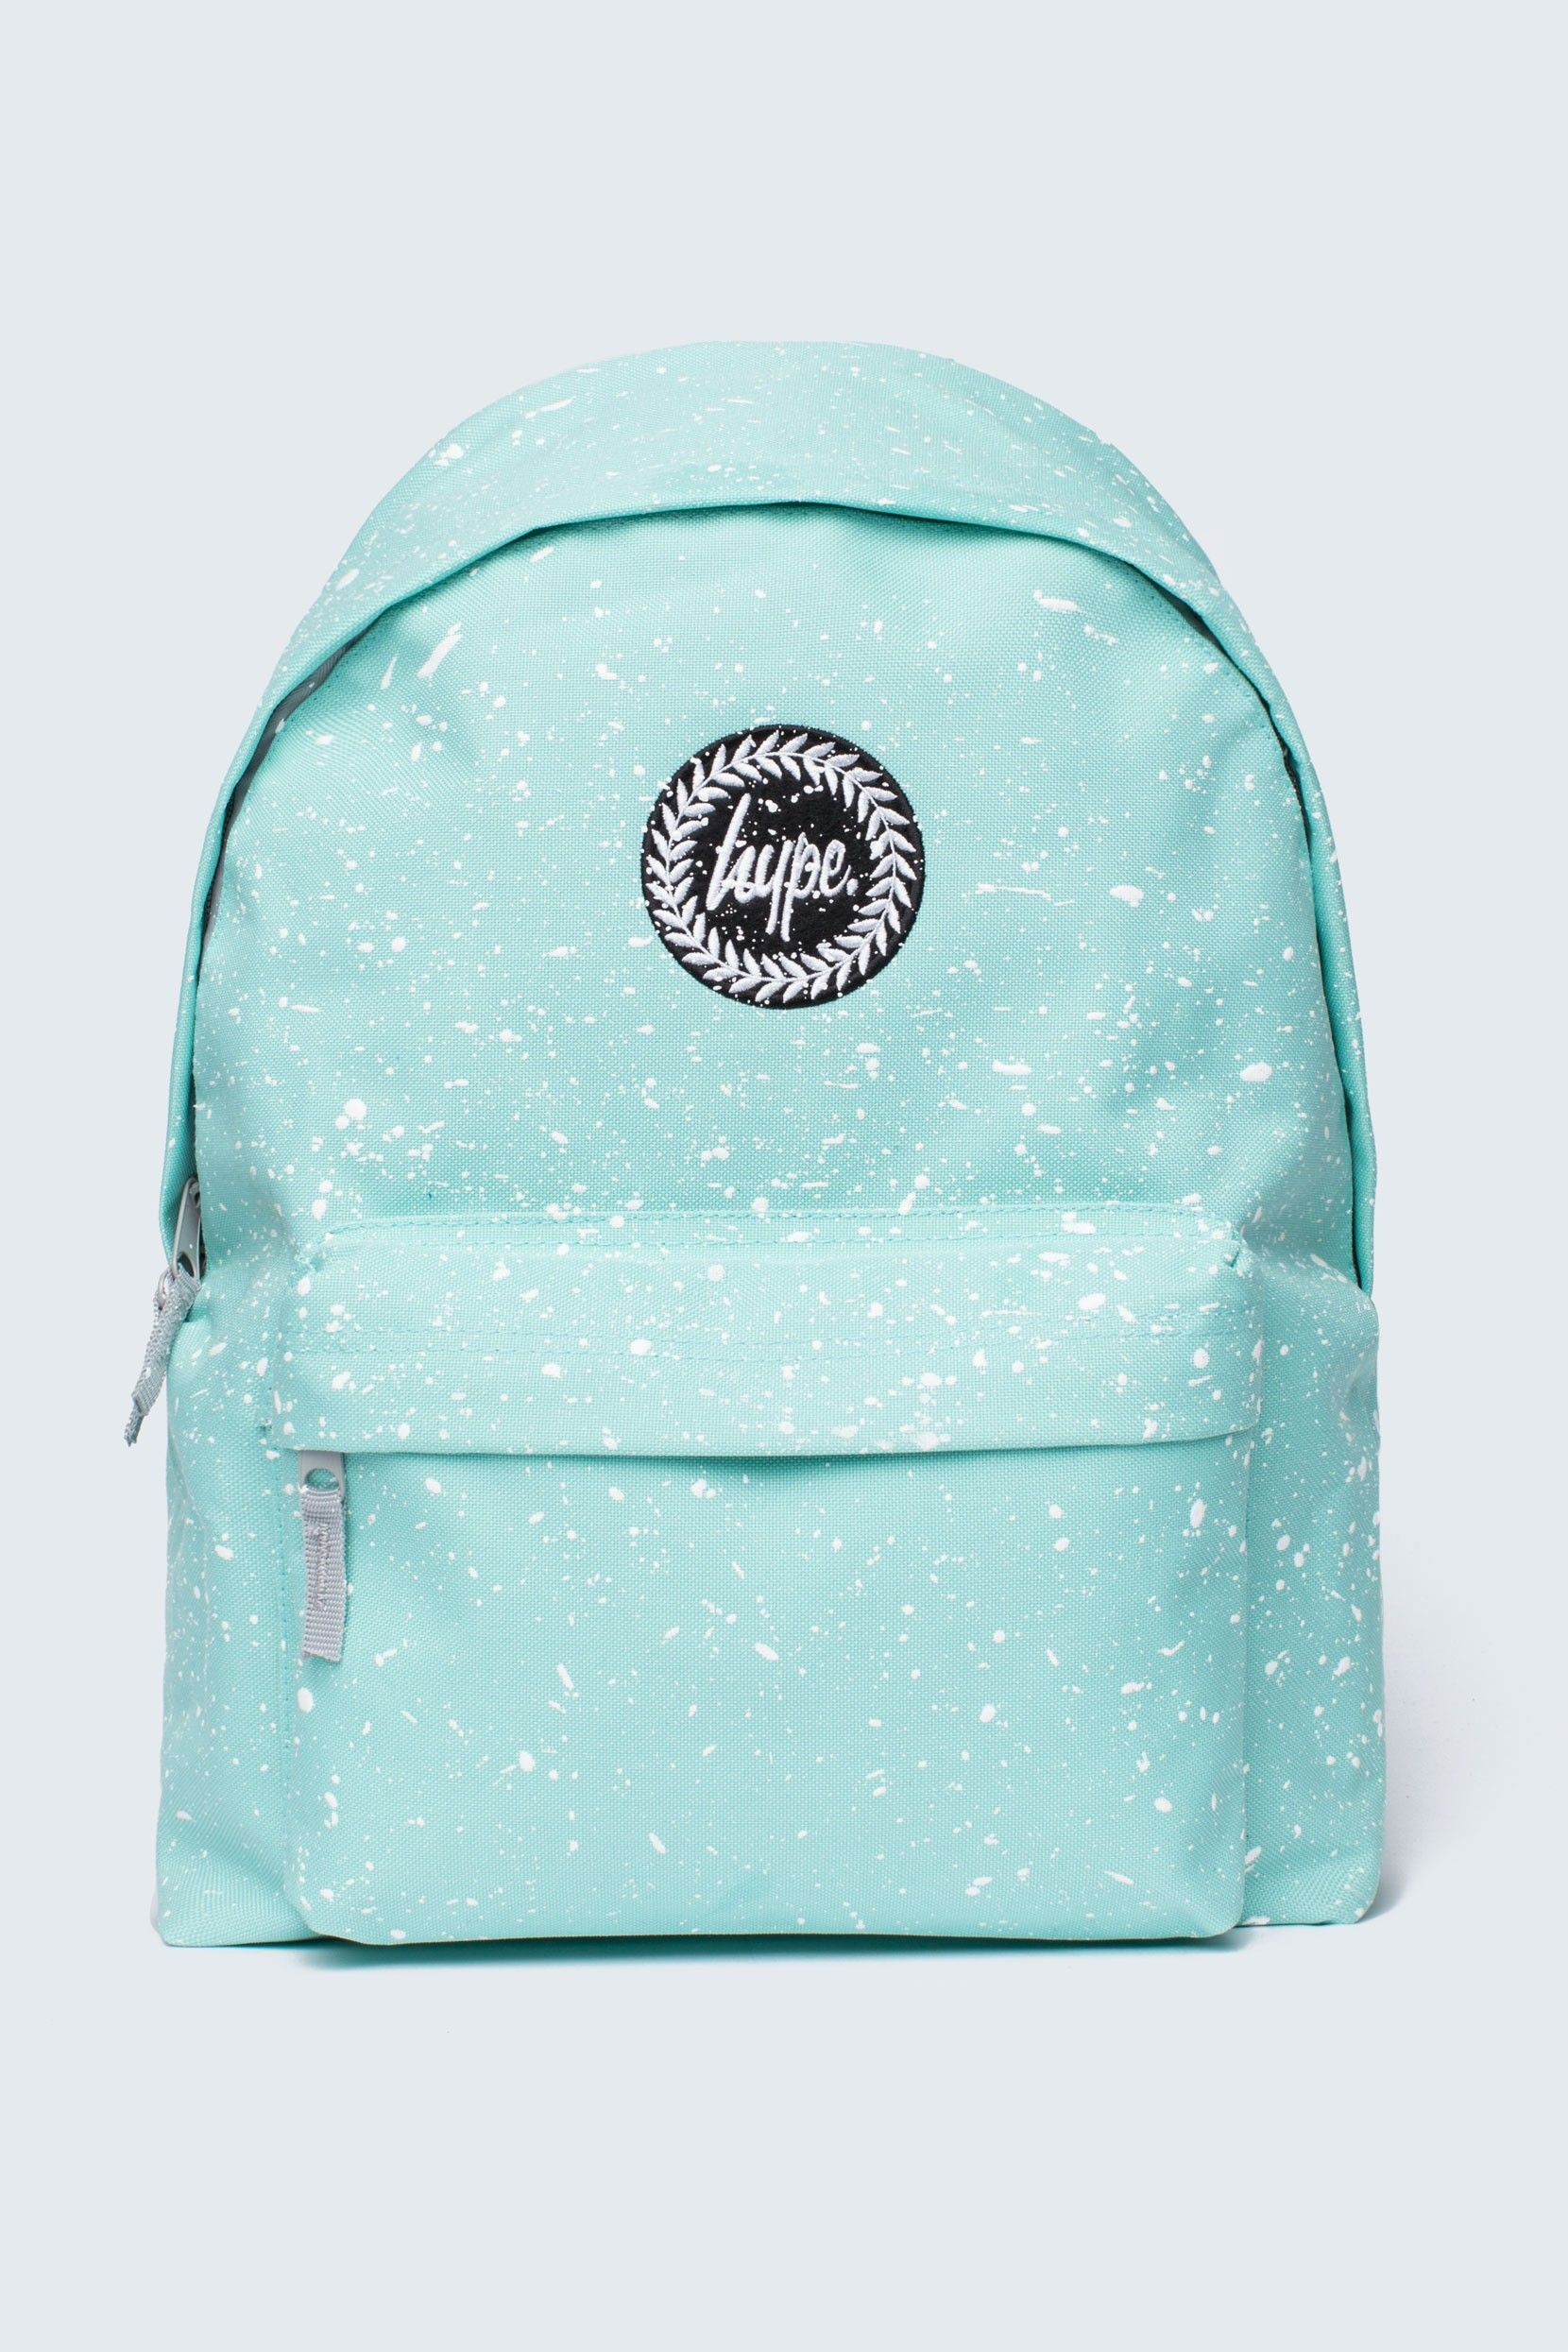 50f9613852 HYPE MINT WITH WHITE SPECKLE BACKPACK - Bags - HYPE®